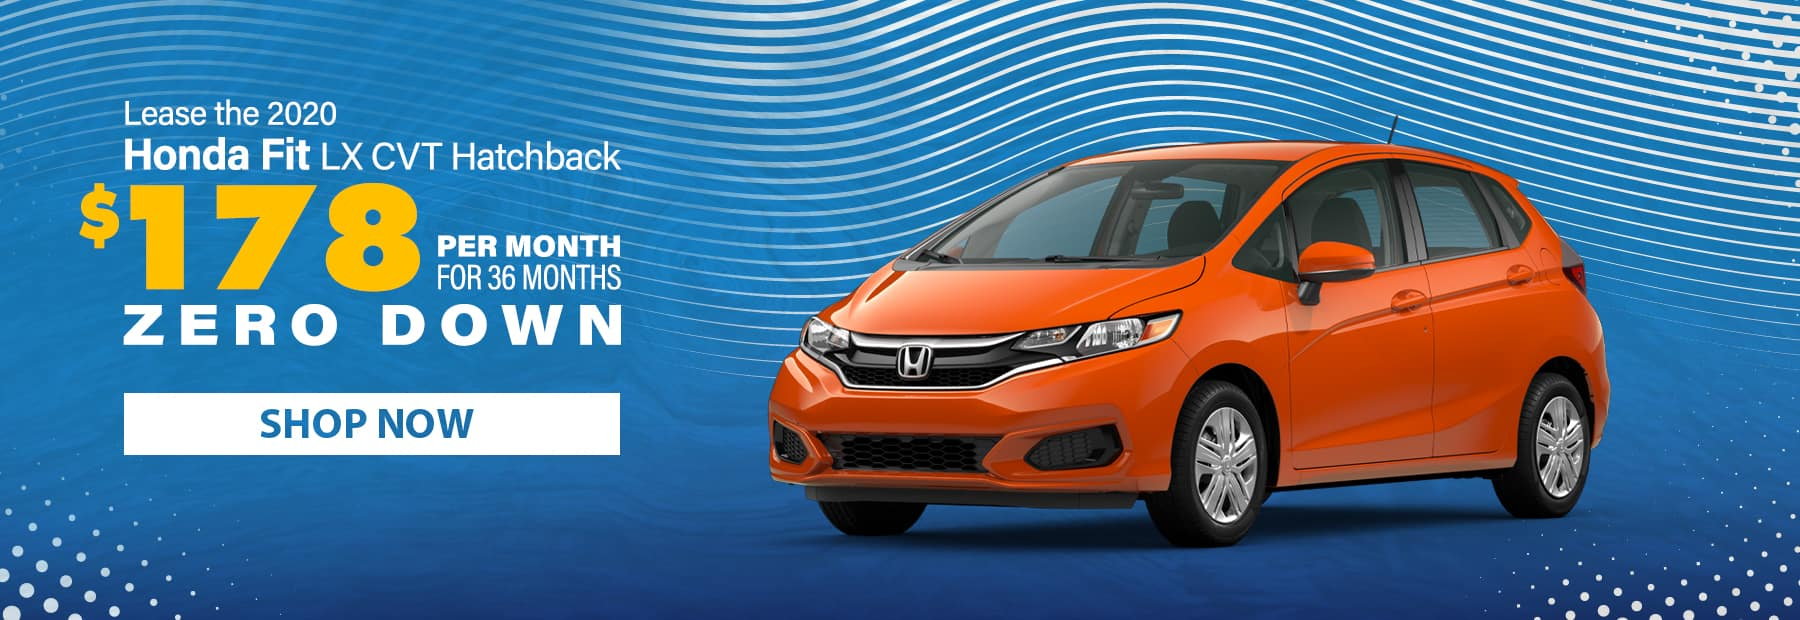 Lease a 2020 Honda Fit LX CVT Hatchback for $178/mo. for 36 months with $0 down!